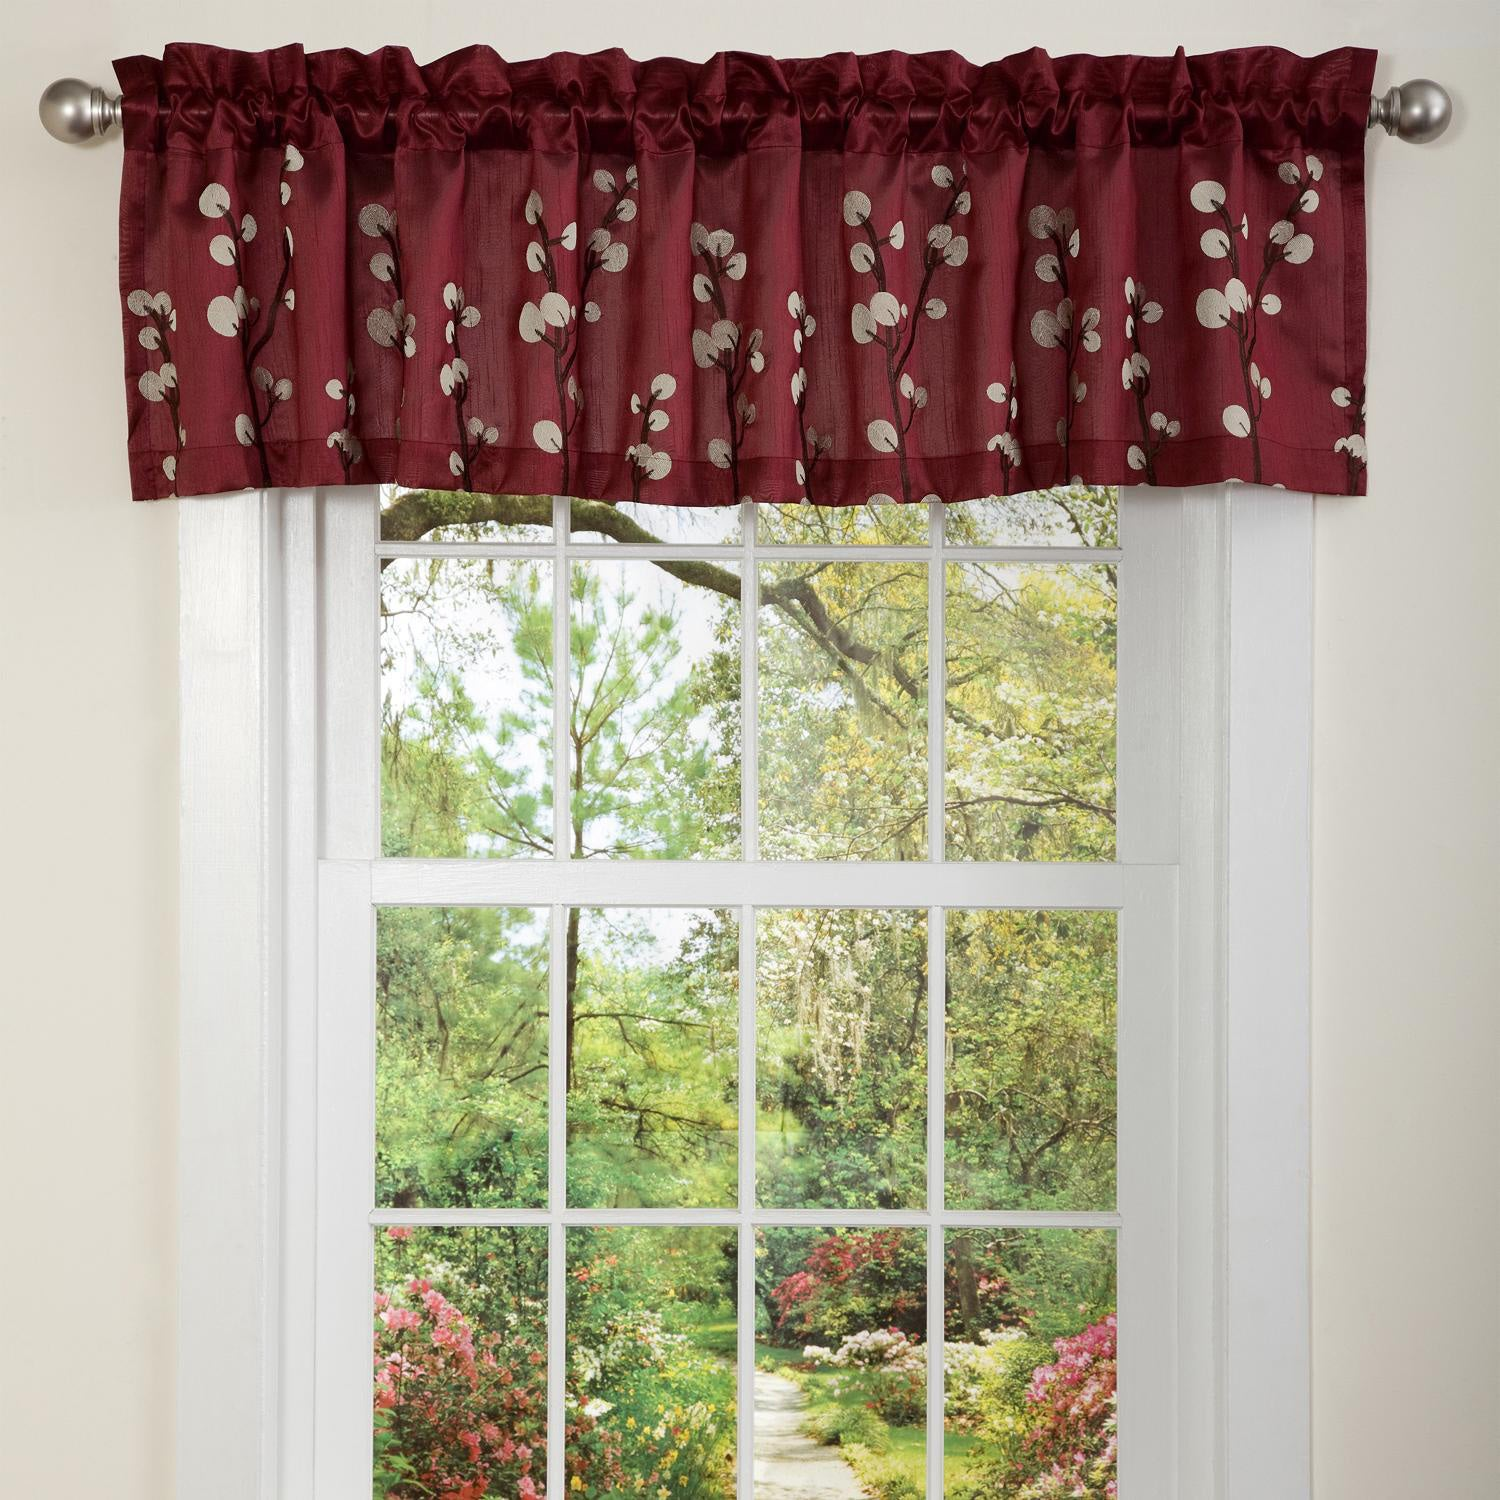 Shop Lush Decor Red Cocoa Flower Valance Free Shipping